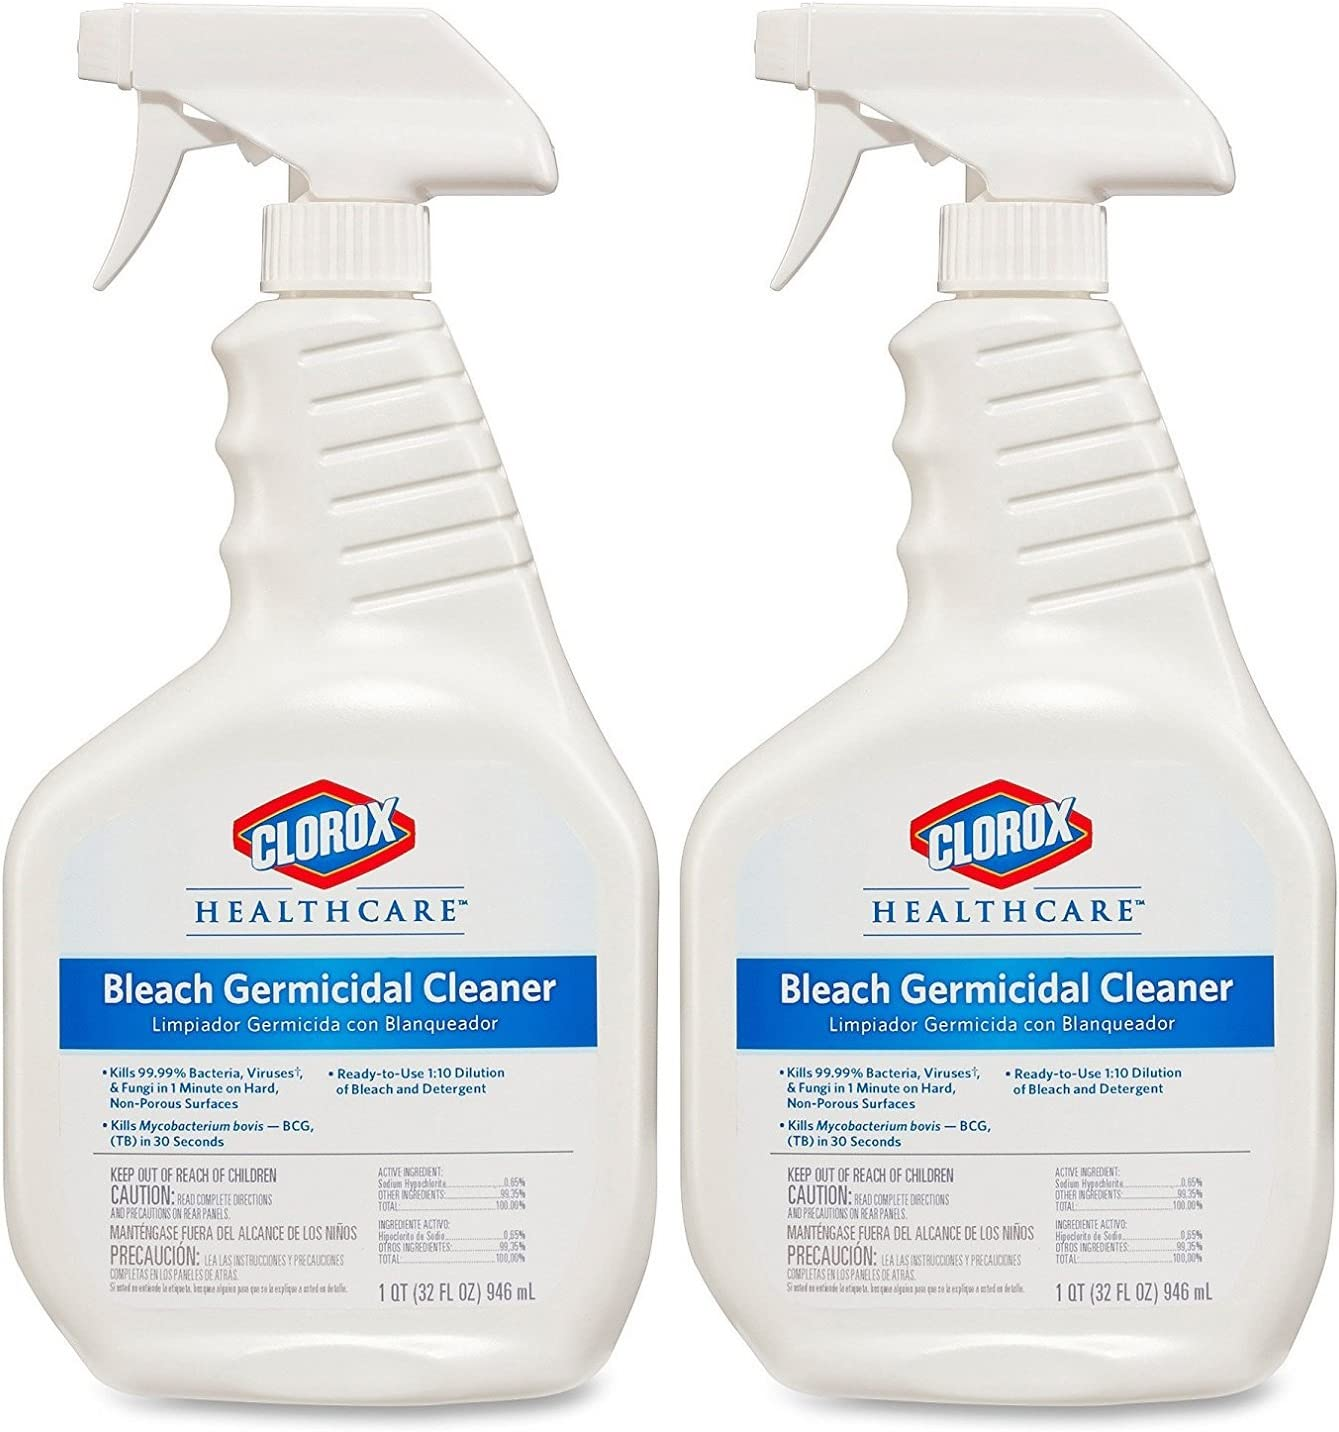 Clorox 35% OFF Healthcare Bleach Germicidal Super special price Cleaner Pack of Ounce 2 32